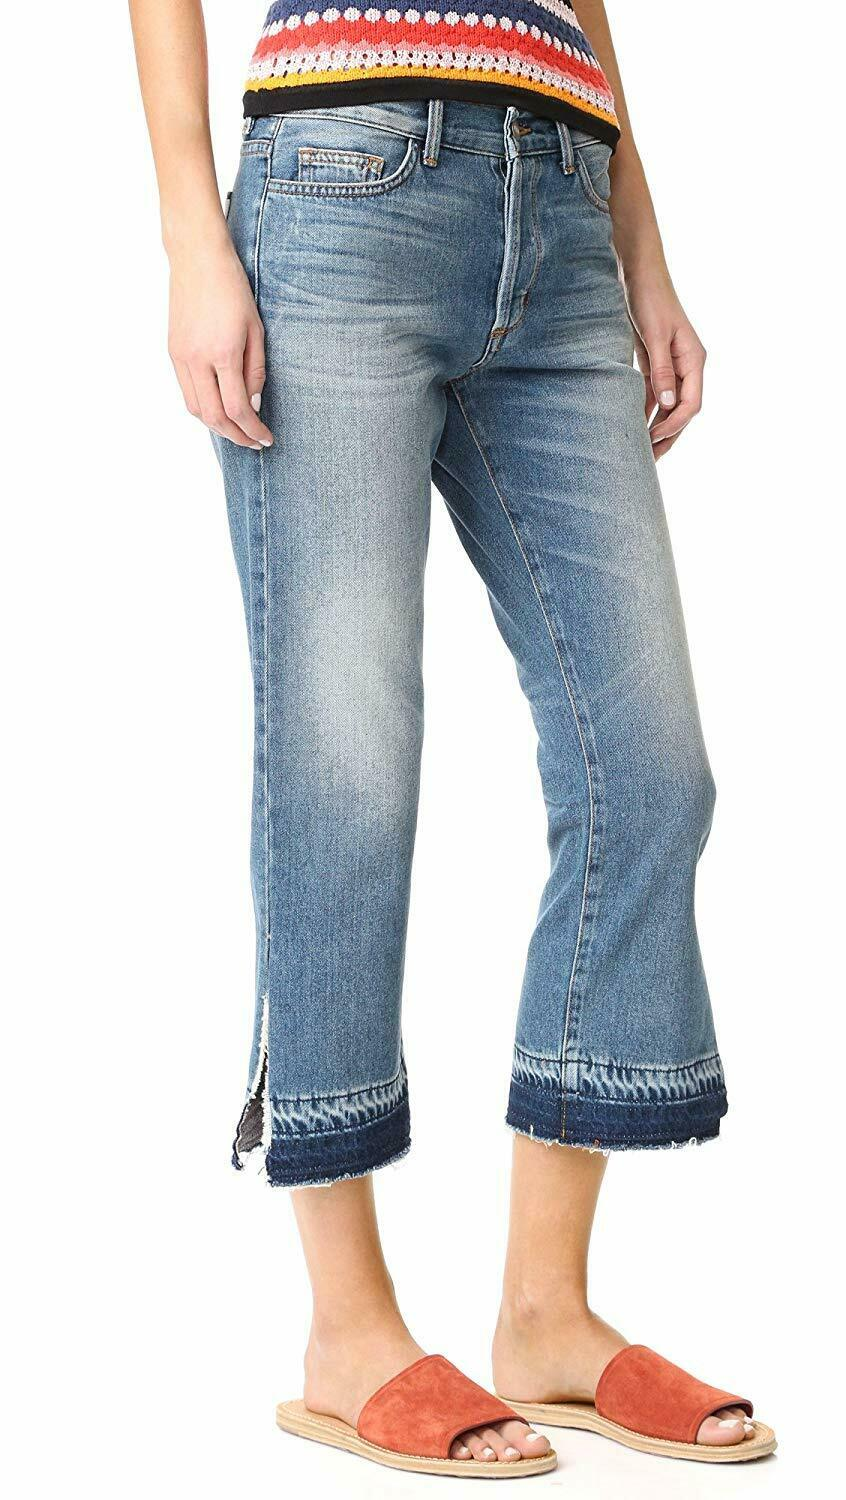 SIWY DENIM Jane B Retro Crop Straight Jeans Once More Chance bluee 24